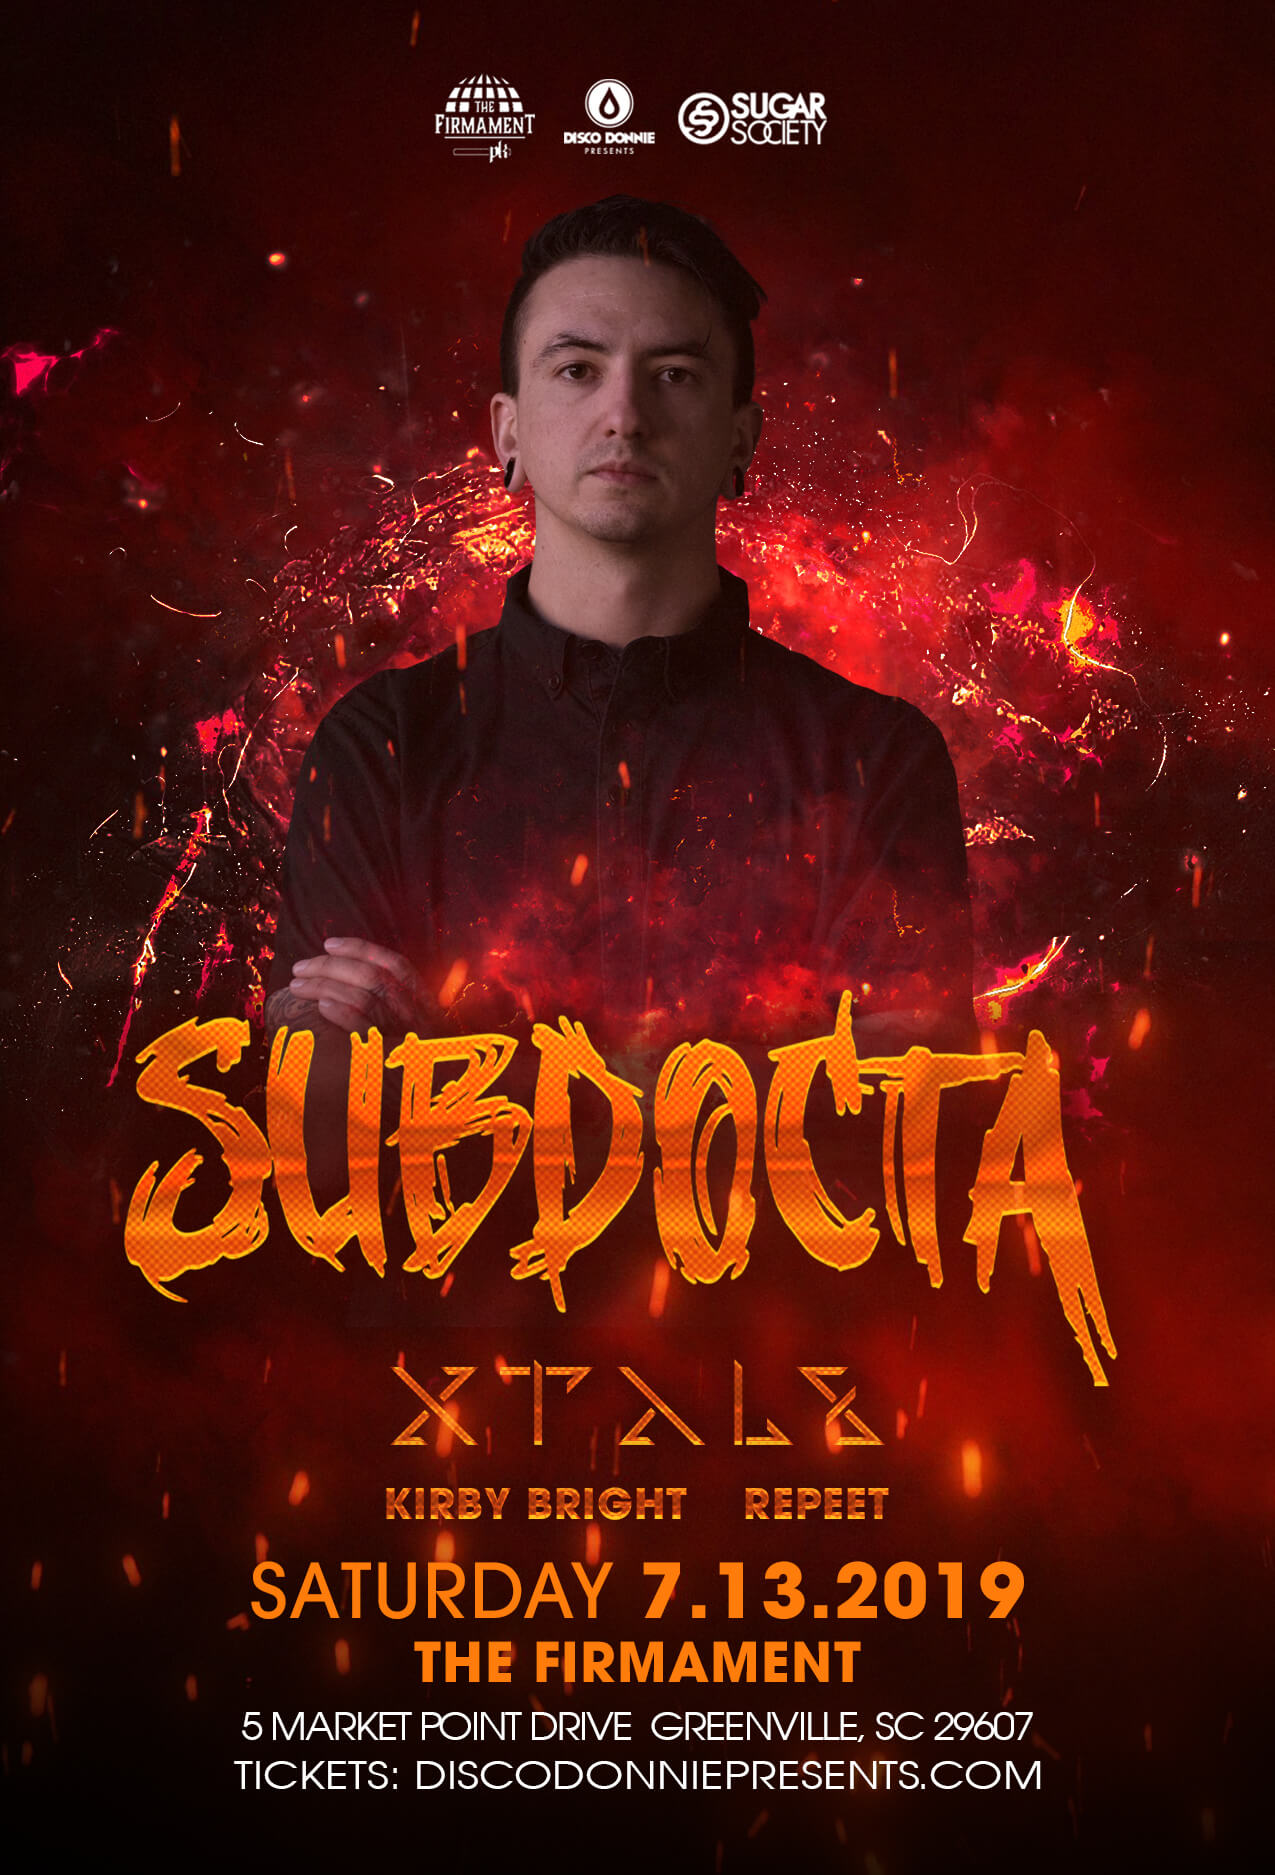 SubDocta in Greenville